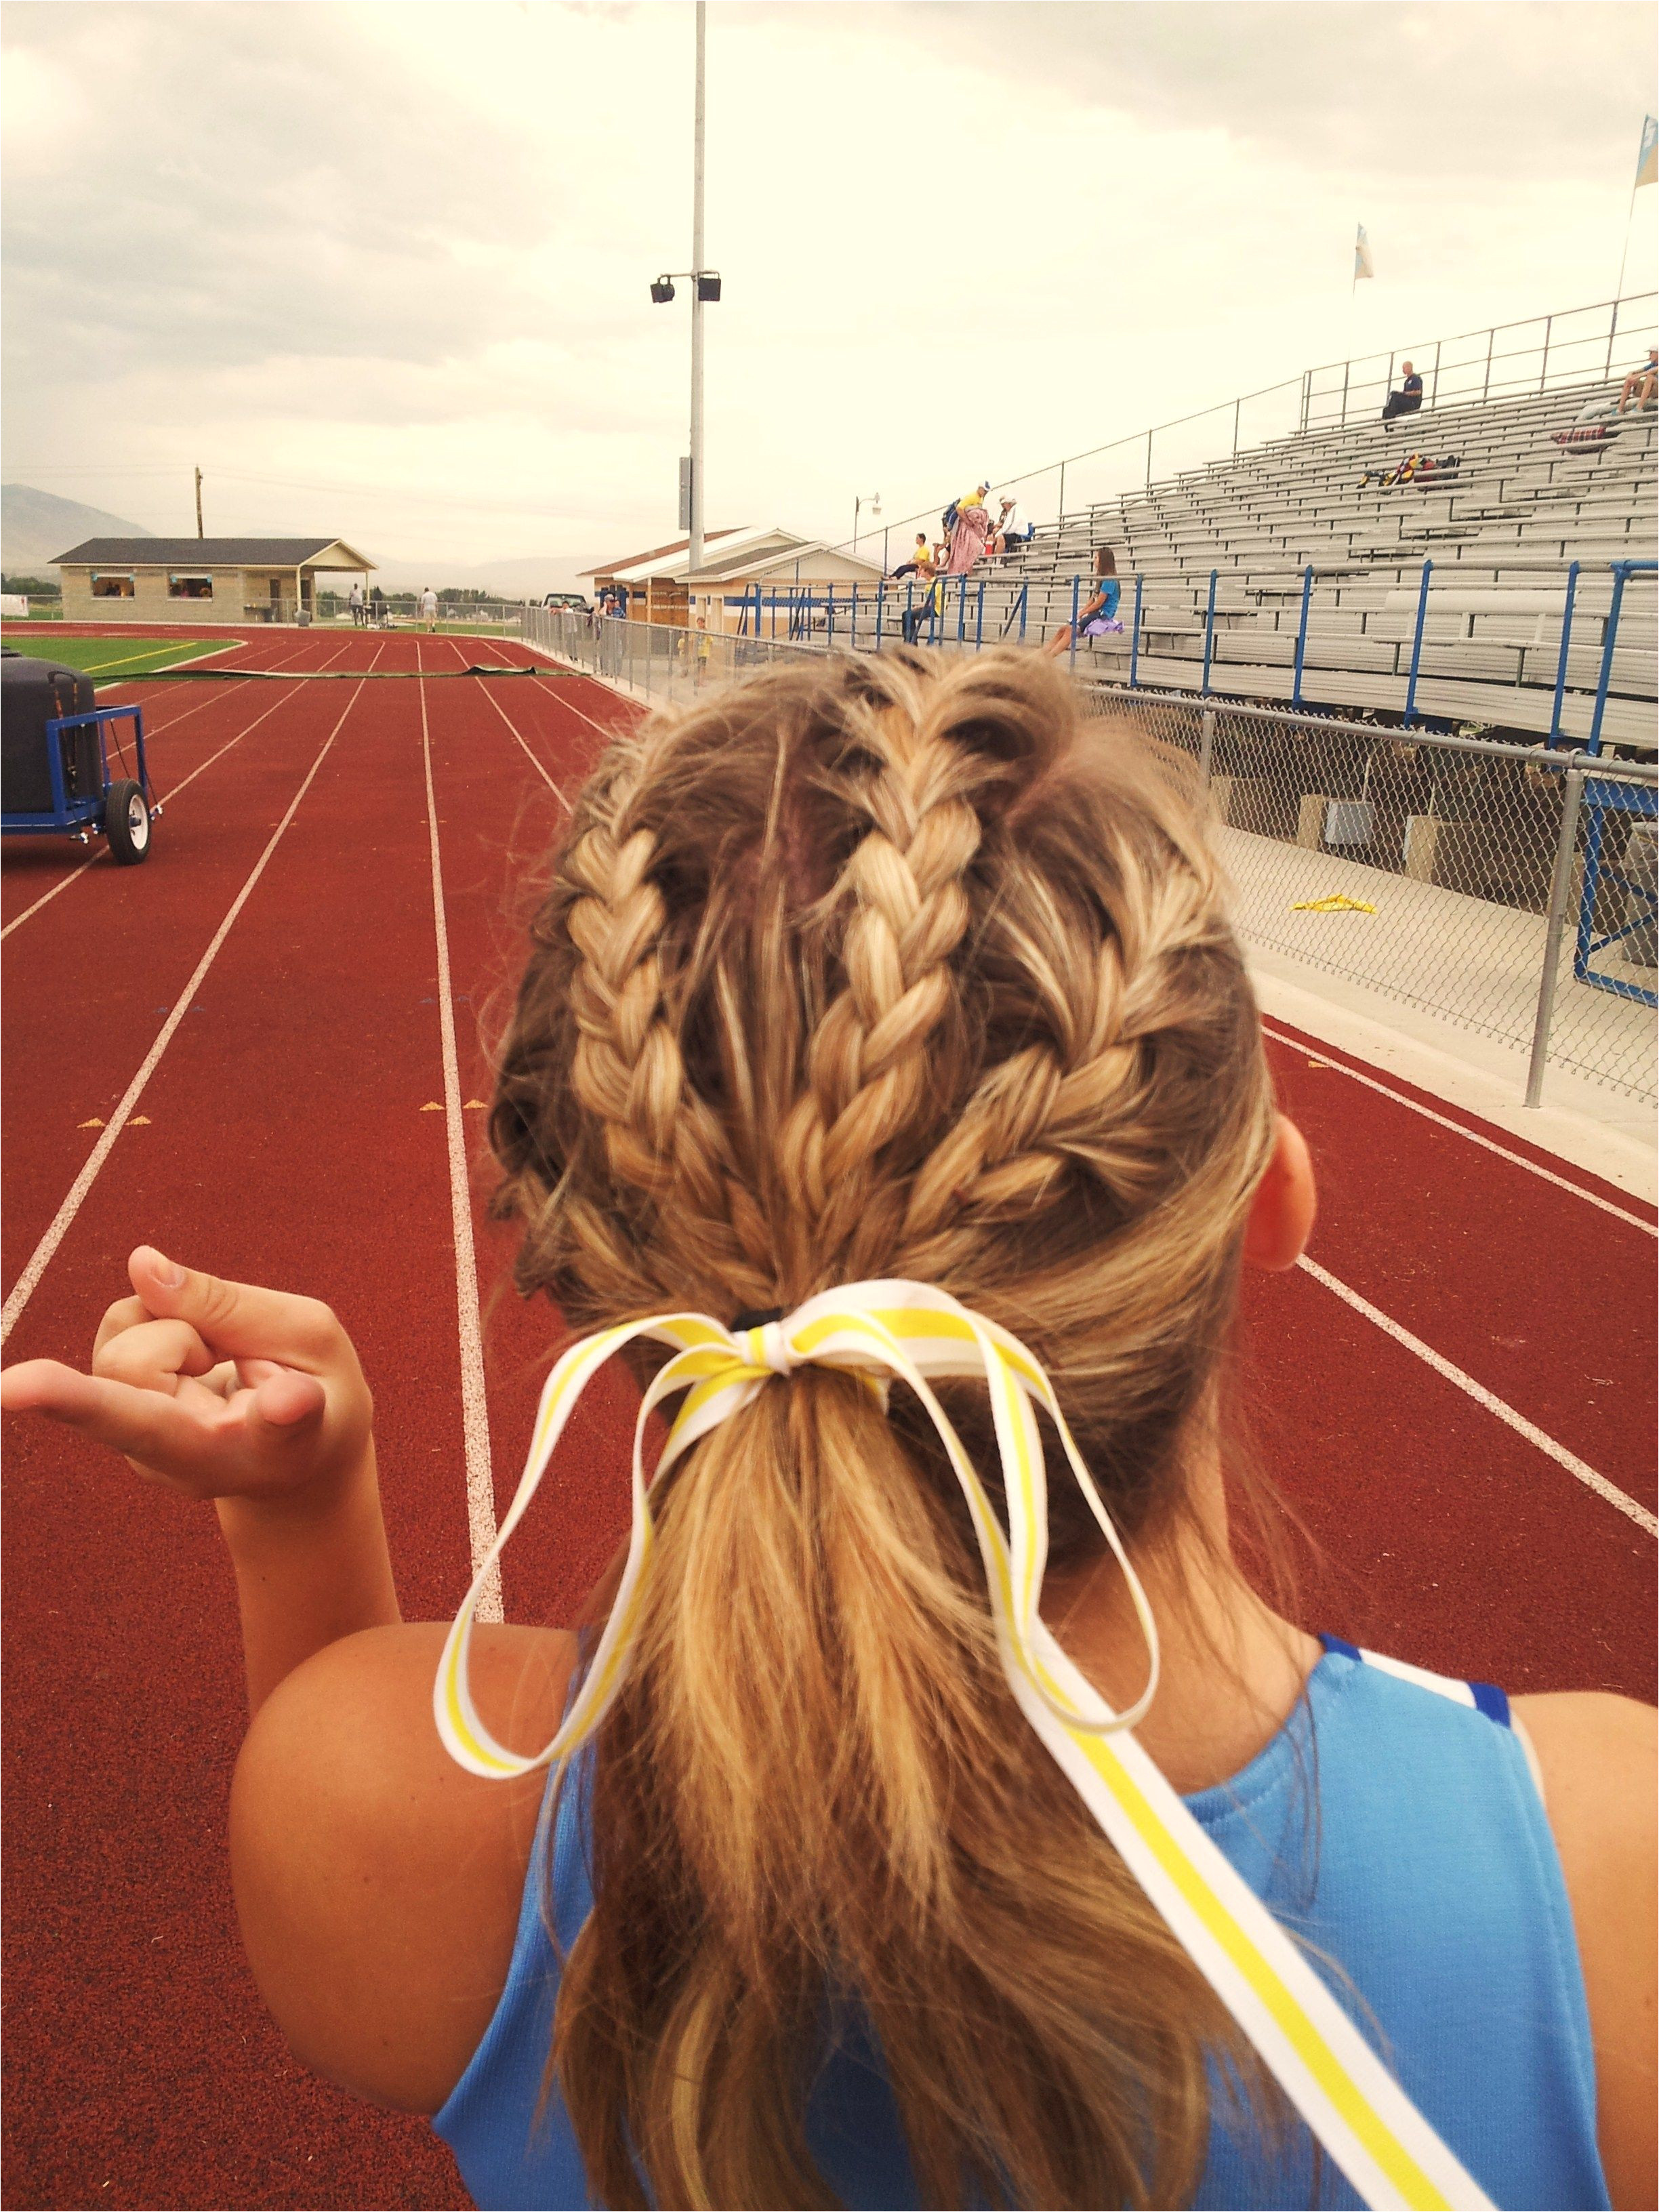 Cute Sporty Hairstyles Inspirational 4 Netball ing Drills for Quick Improvement °Å¸